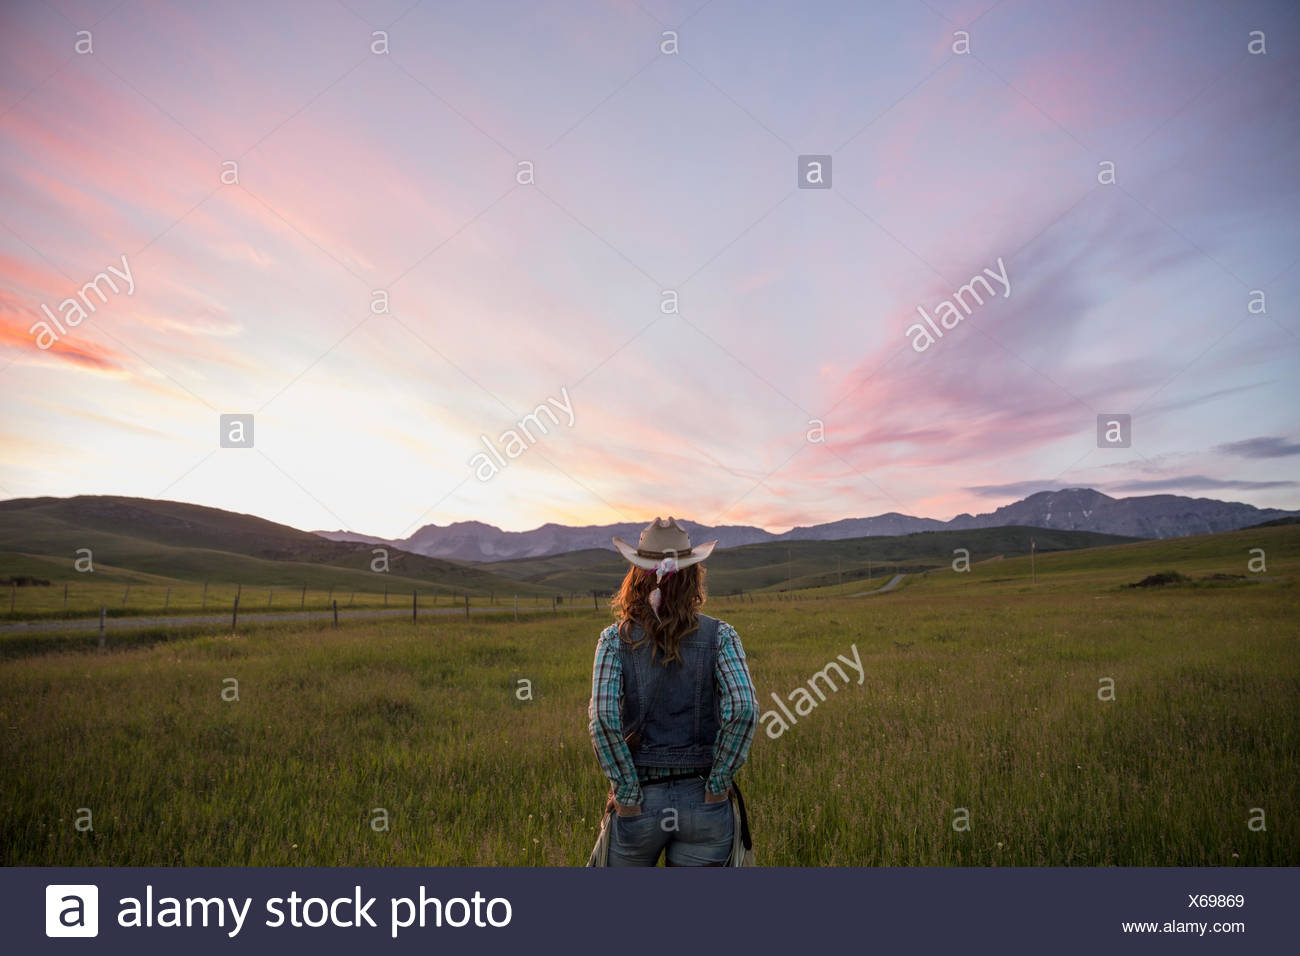 Female rancher watching dramatic sunset sky over field - Stock Image